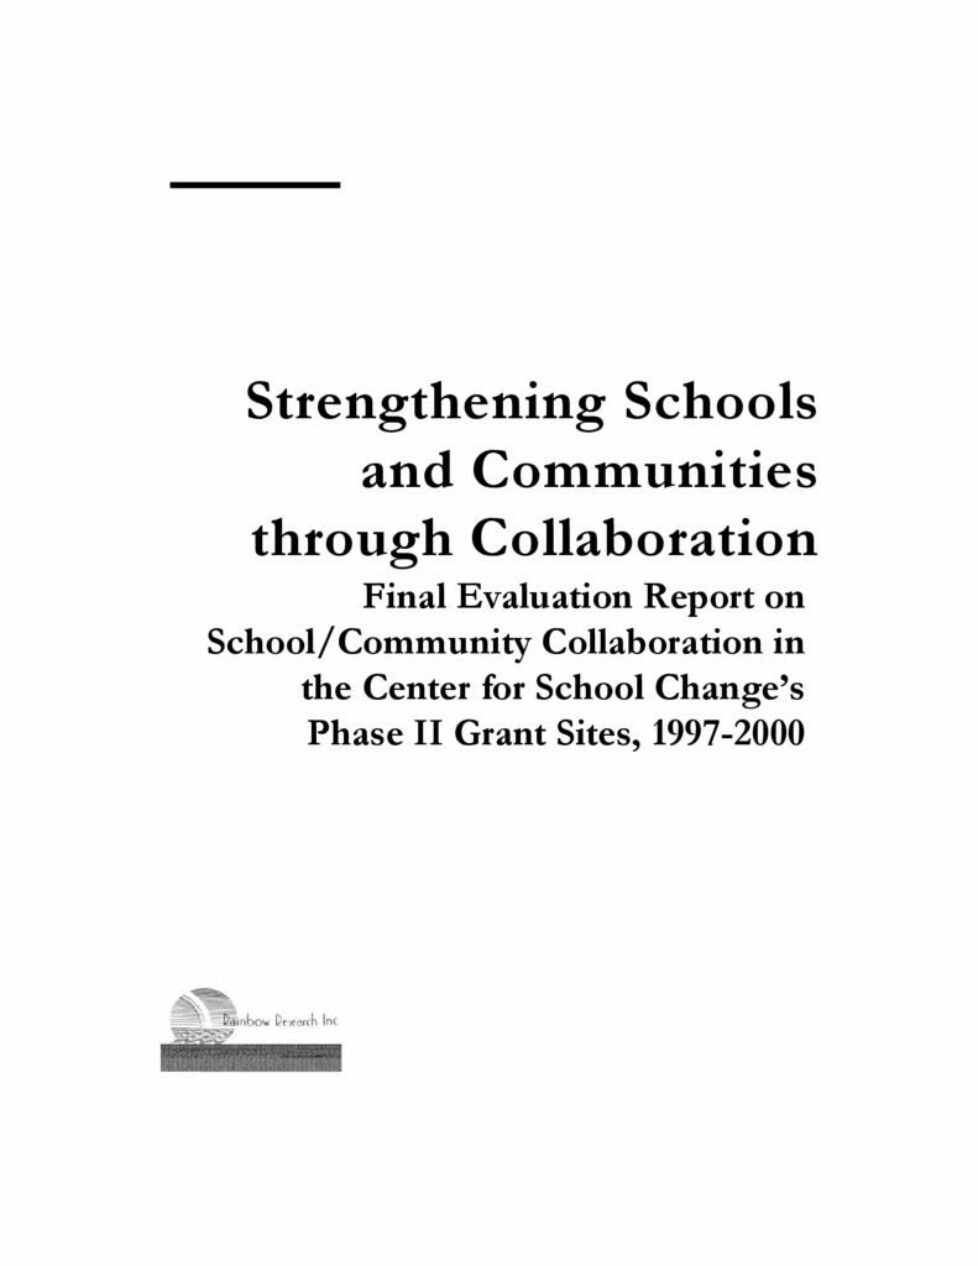 thumbnail of Strengthening Schools and Communities through Collaboration